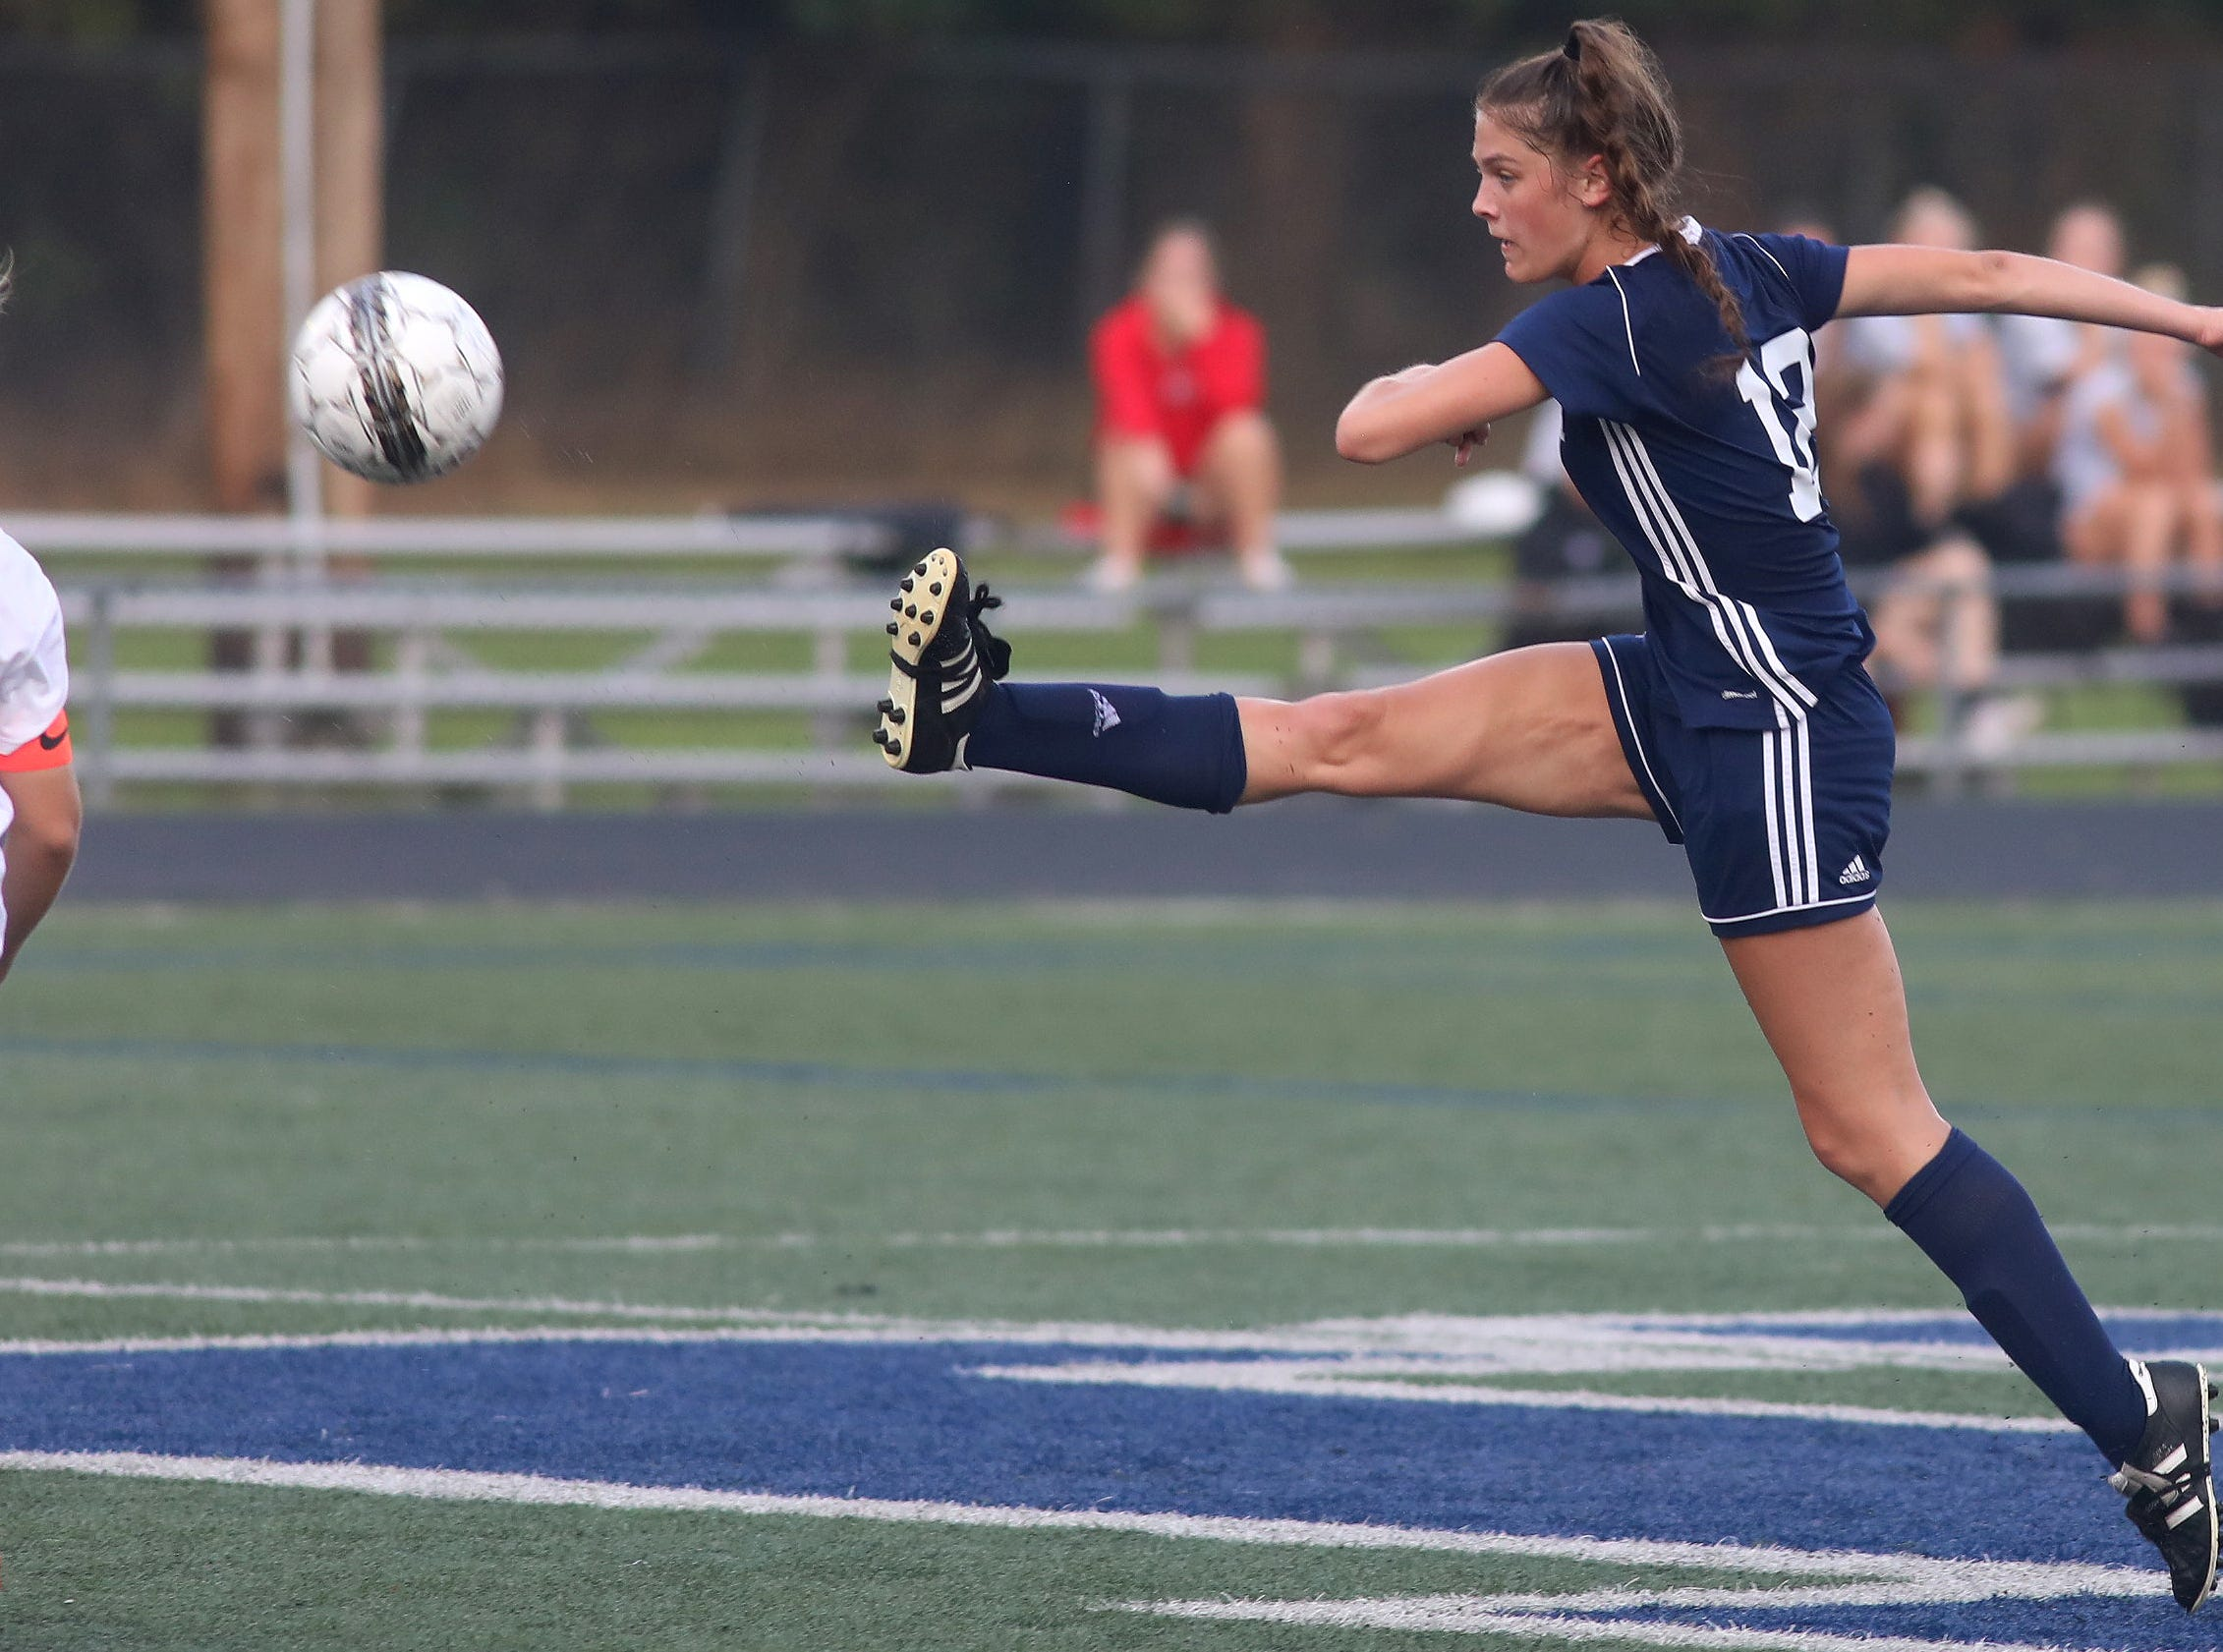 Notre Dame Academy's Maya Decker kicks the ball during Soccerama  against Anderson at Tower Park, Saturday, Aug. 11,2018.